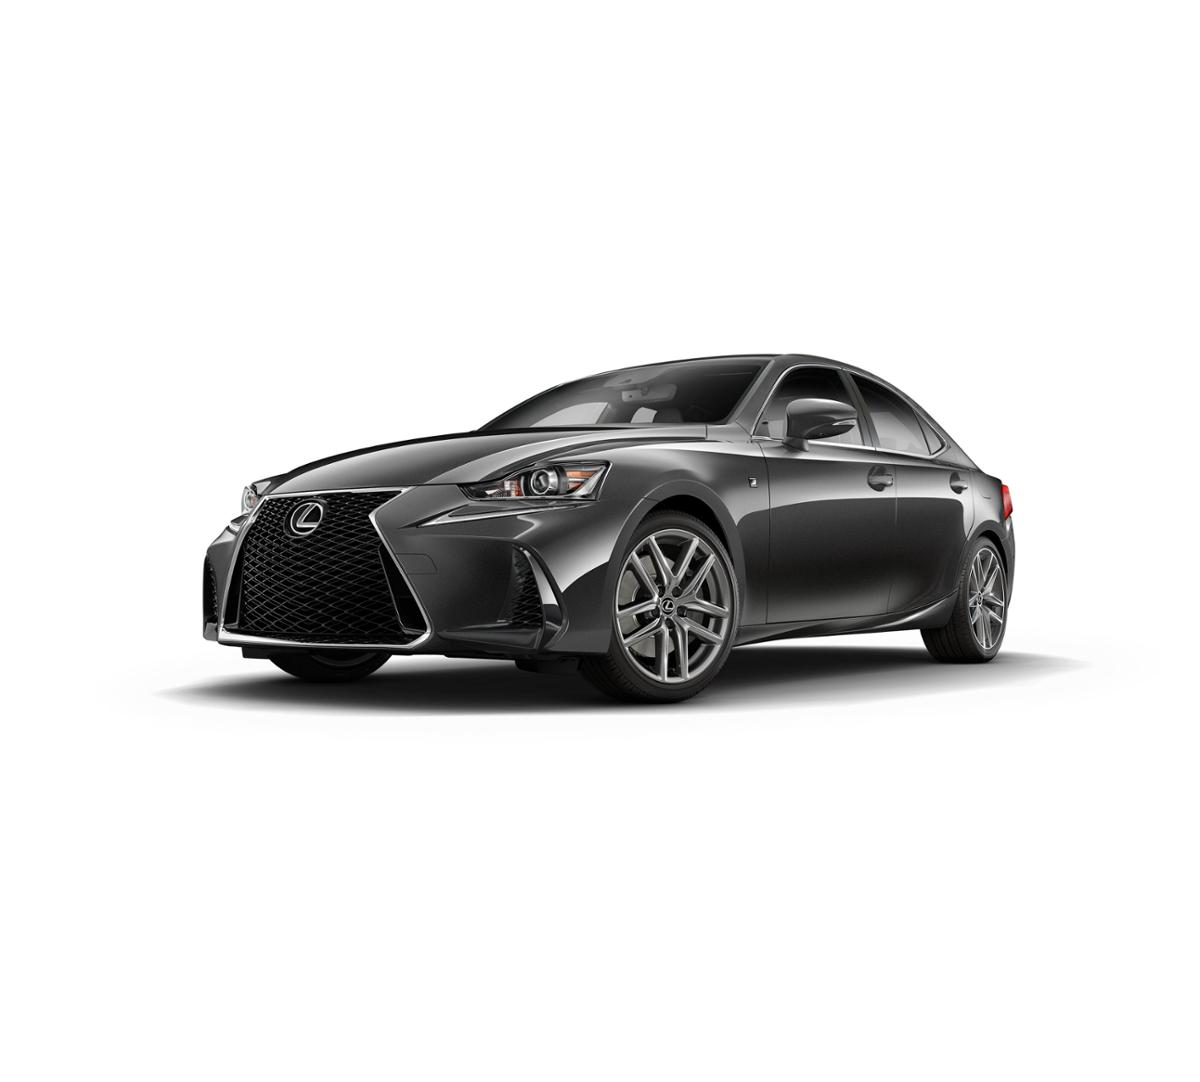 2019 Lexus IS 350 Vehicle Photo in Bedford, NH 03110